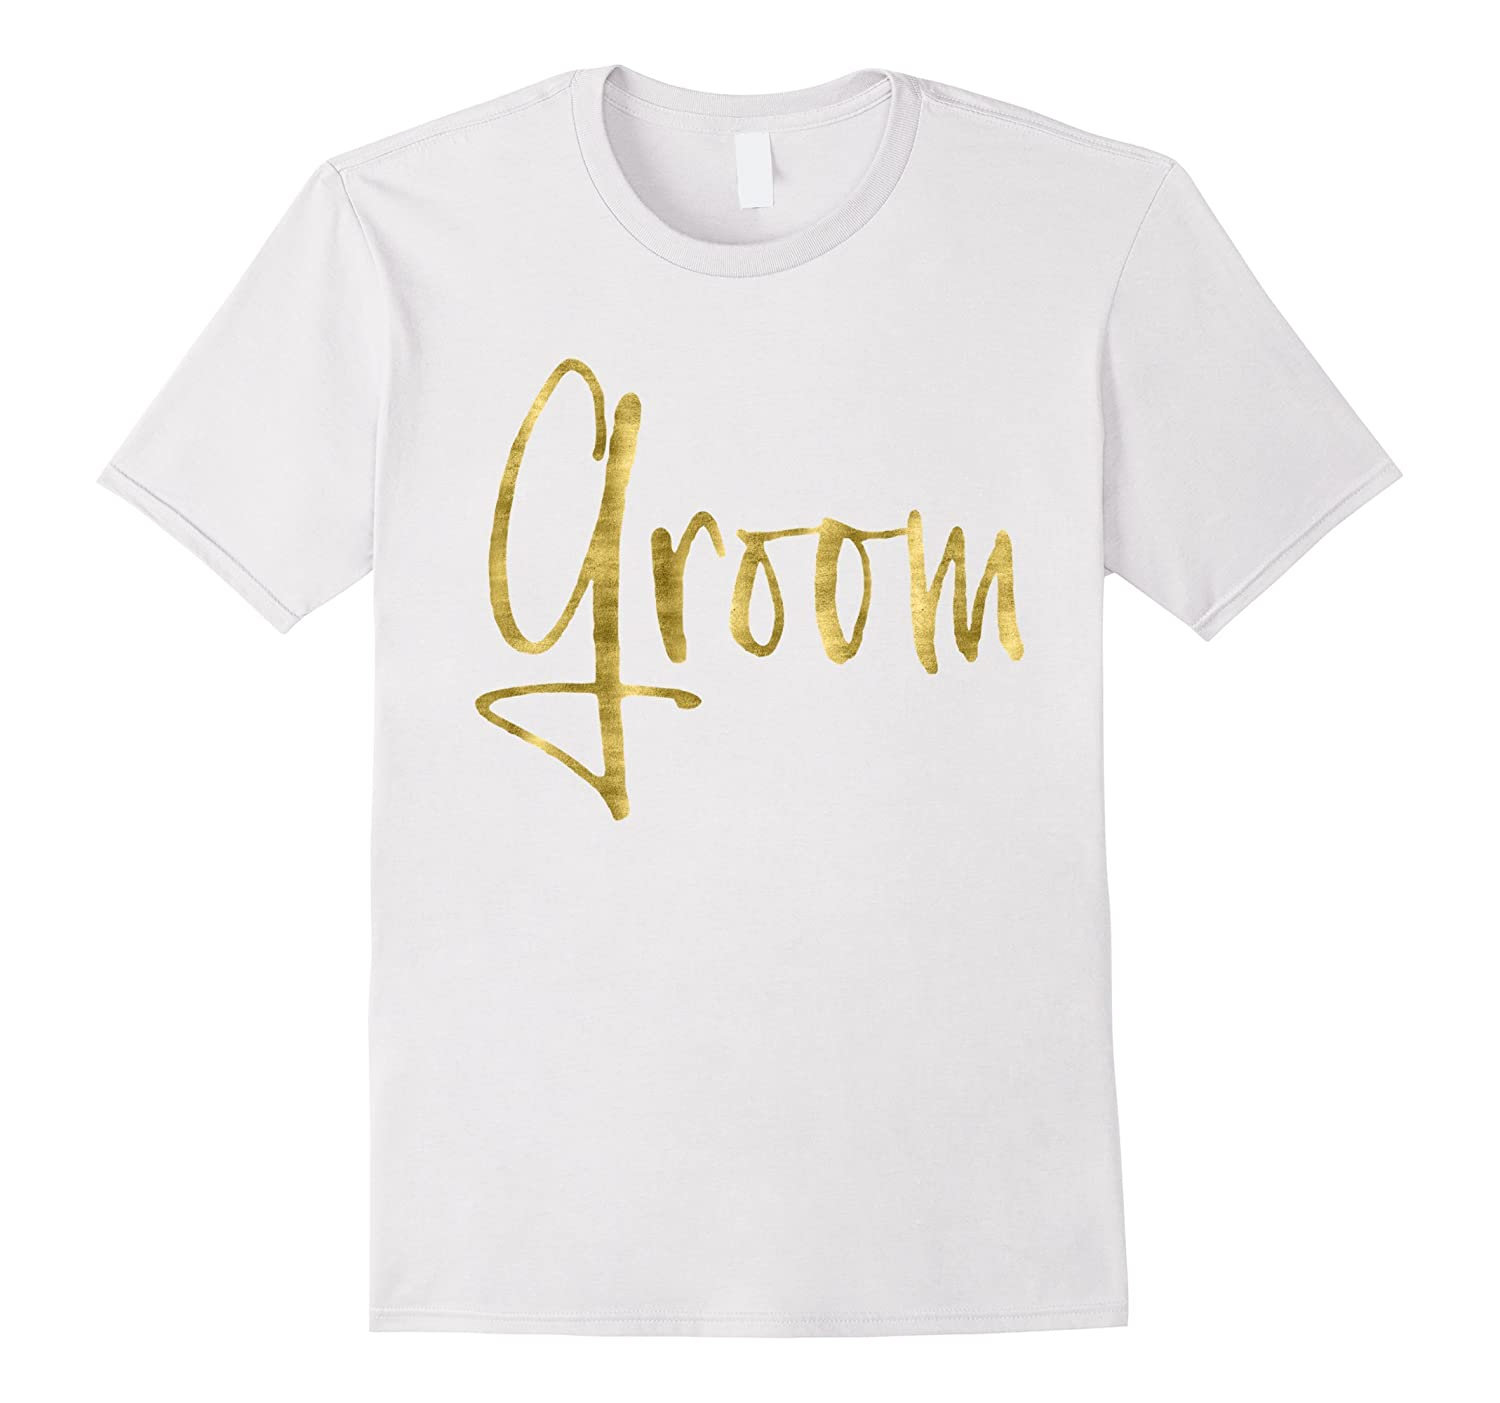 Mens Bachelor Party Shirt With Golden Effect Groom-TH